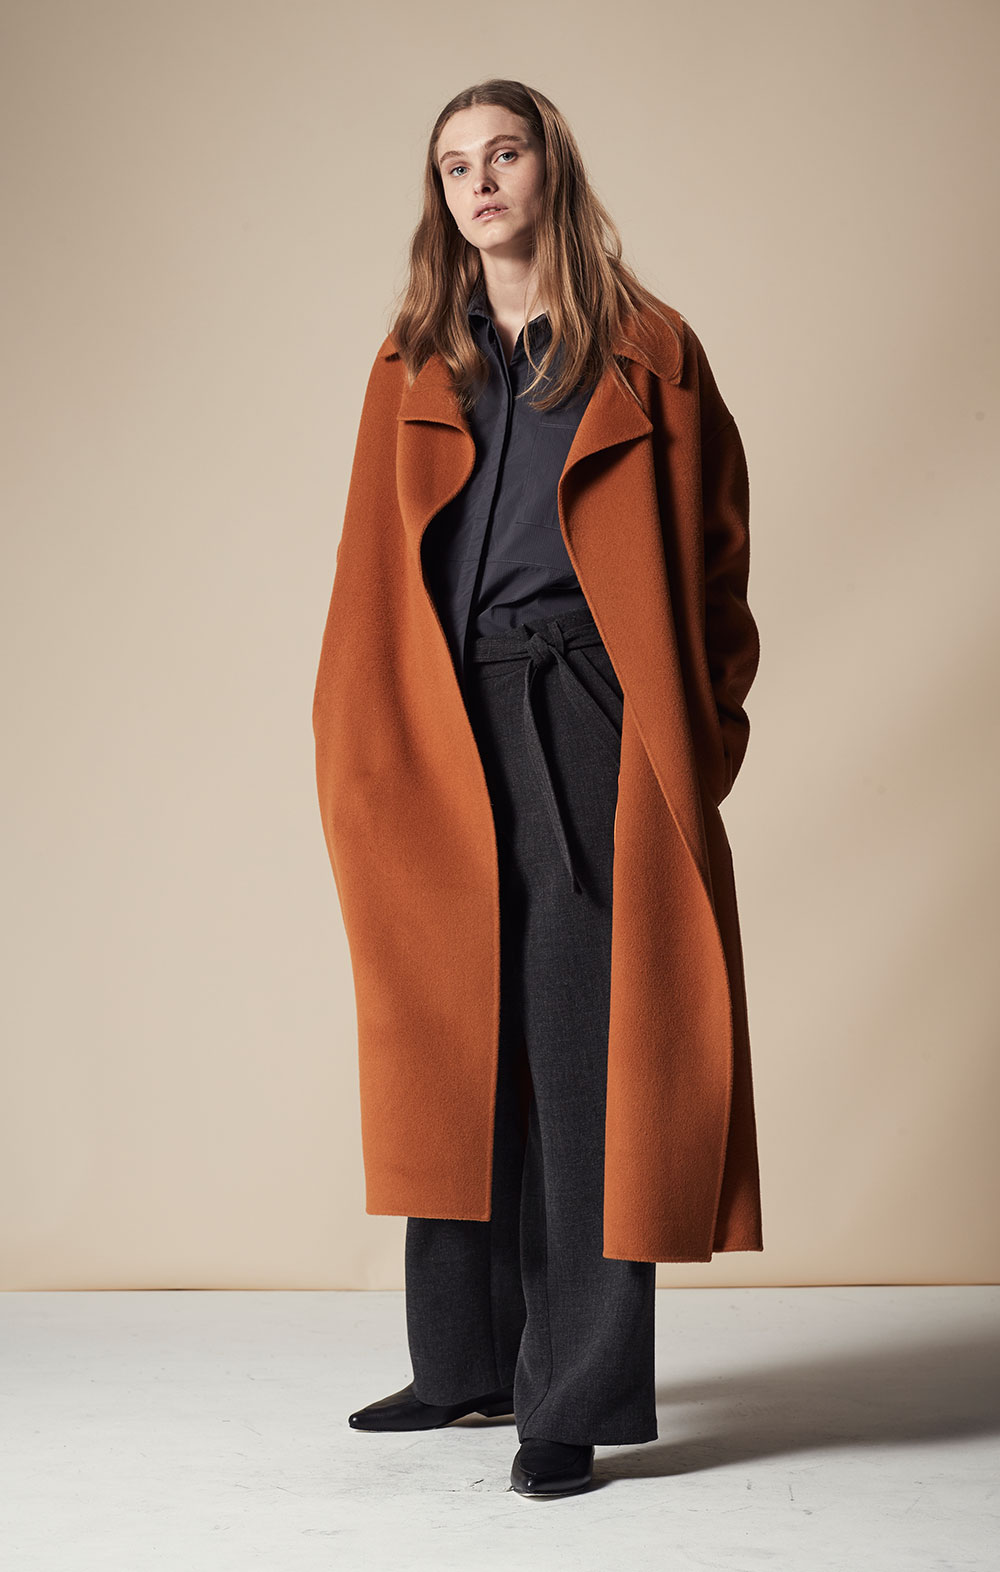 Cashmere-blend Handmade Coat FBJ080-ORG Open Sleeve Striped Shirt FBT020-BLK Tie Front Wide-leg Pants FBP035-CHR